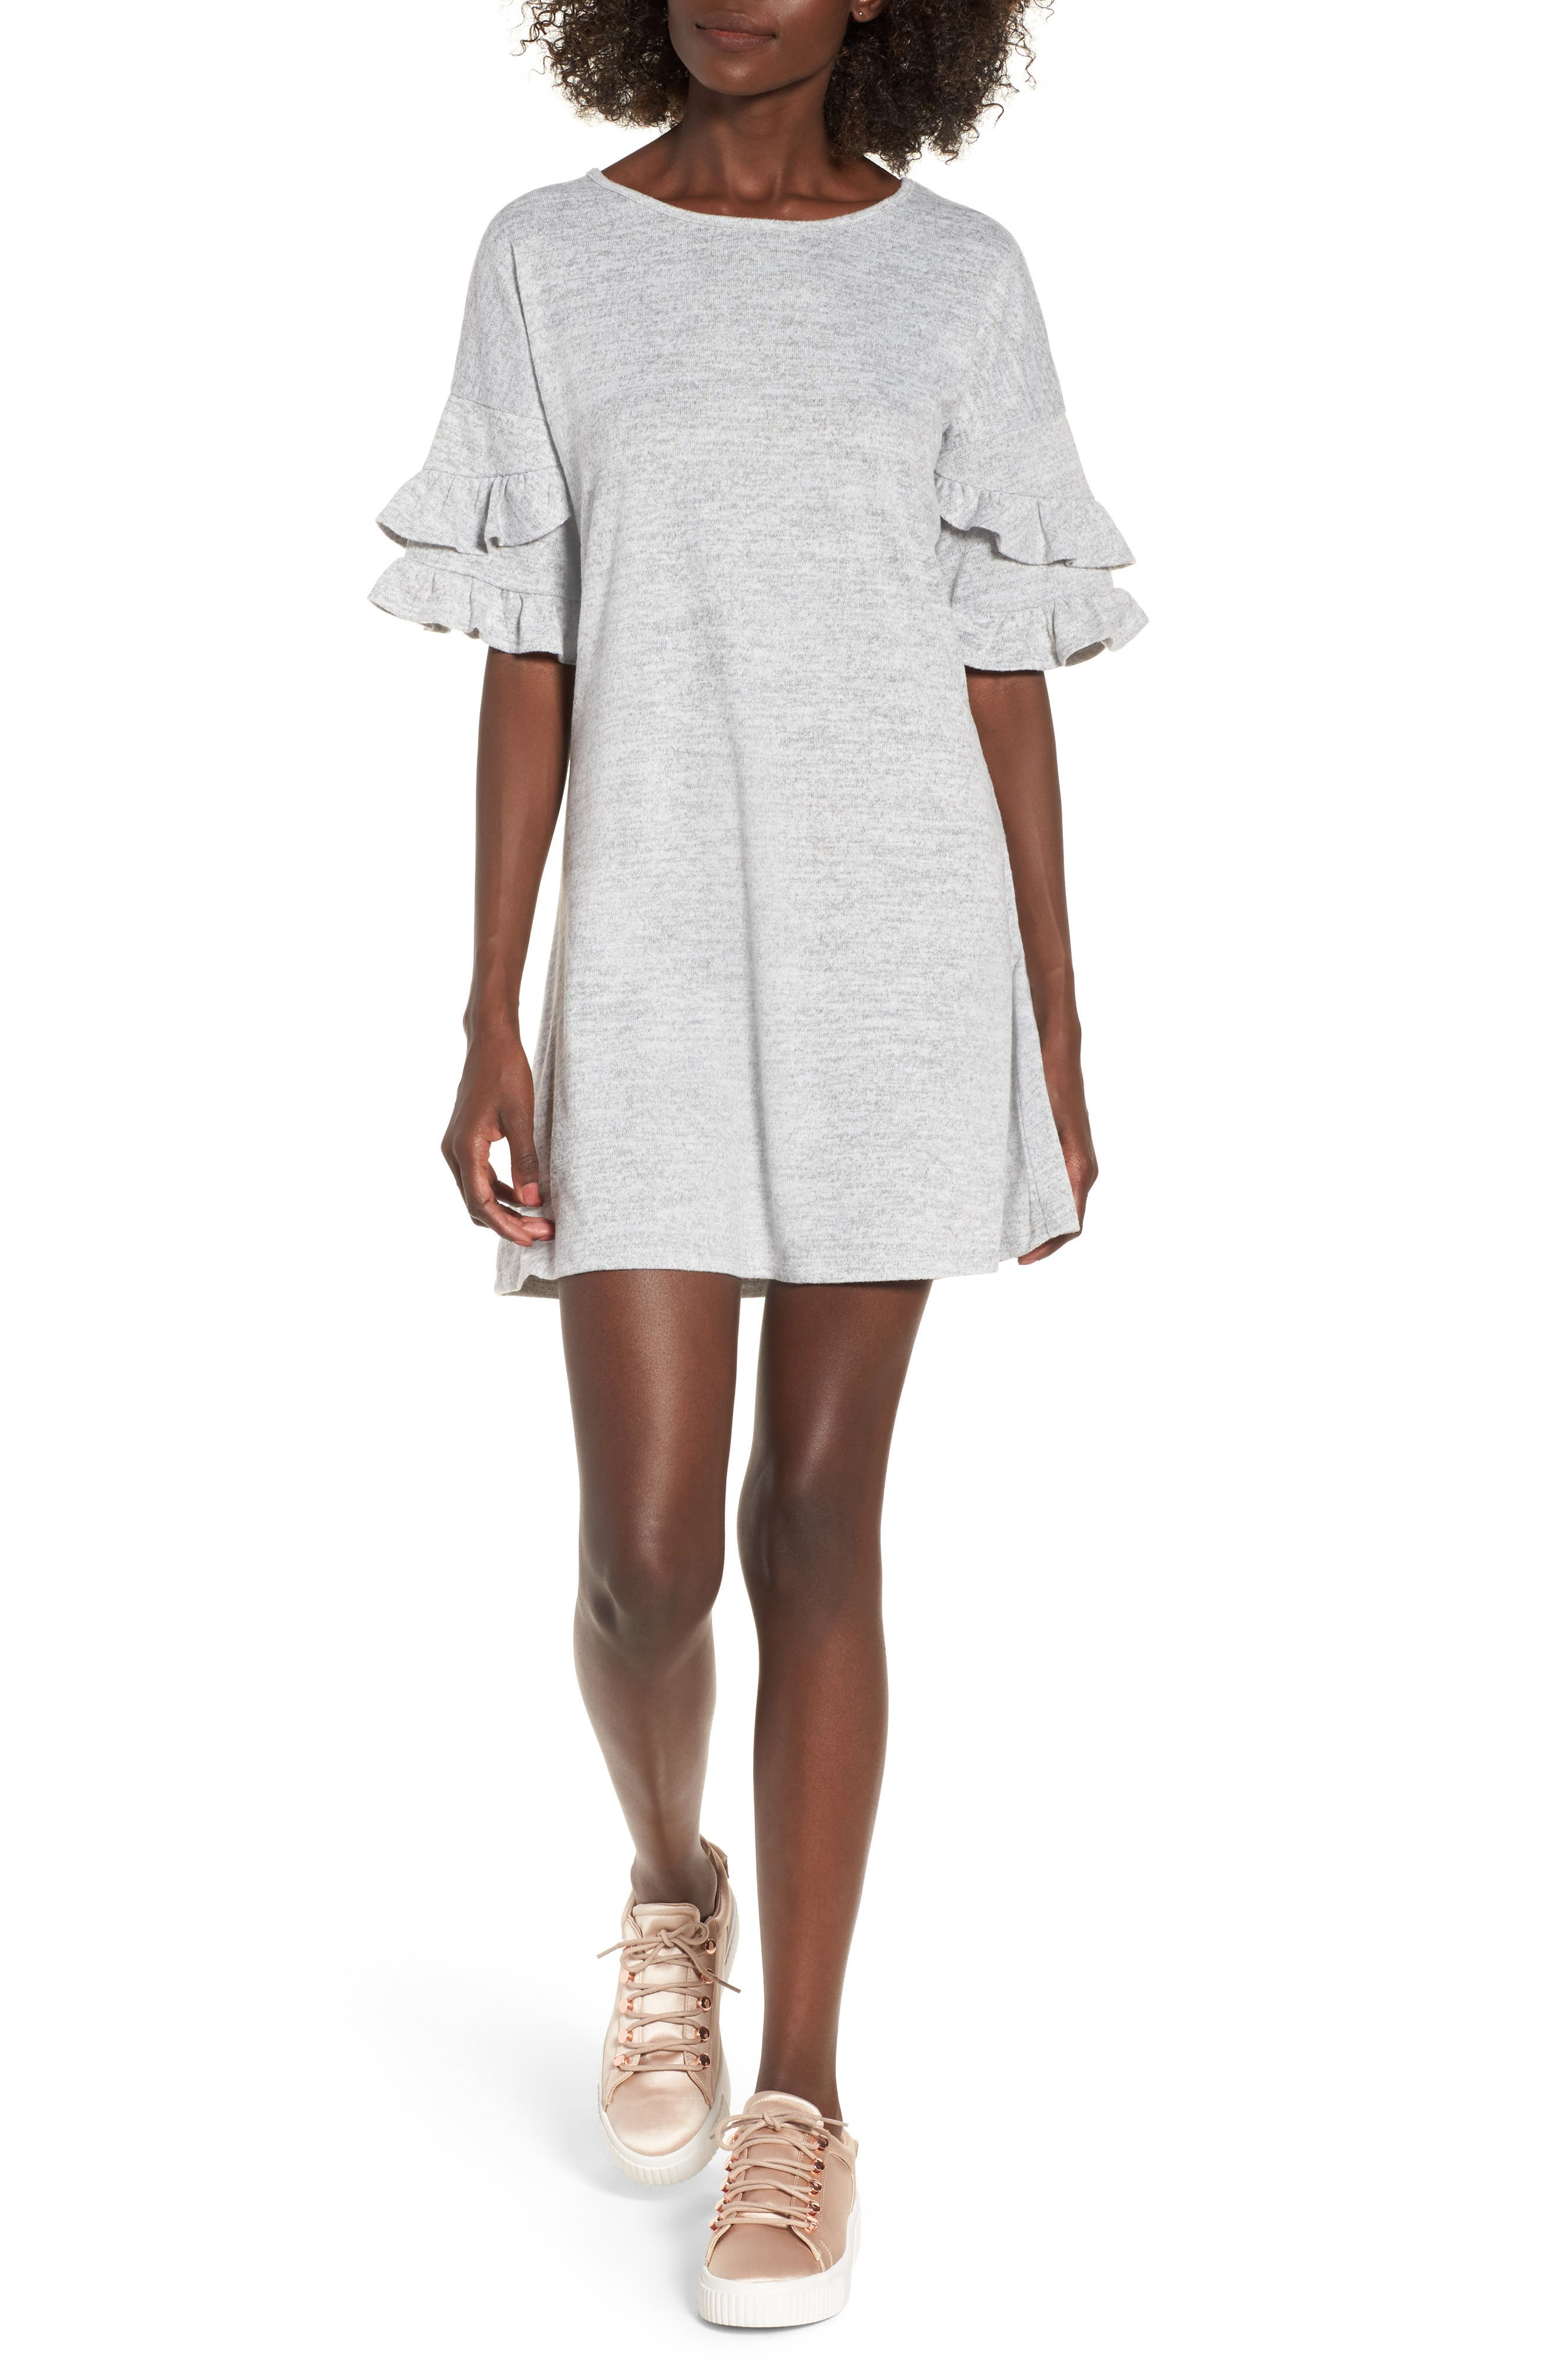 Ruffle Sleeve Sweatshirt Dress,                         Main,                         color,